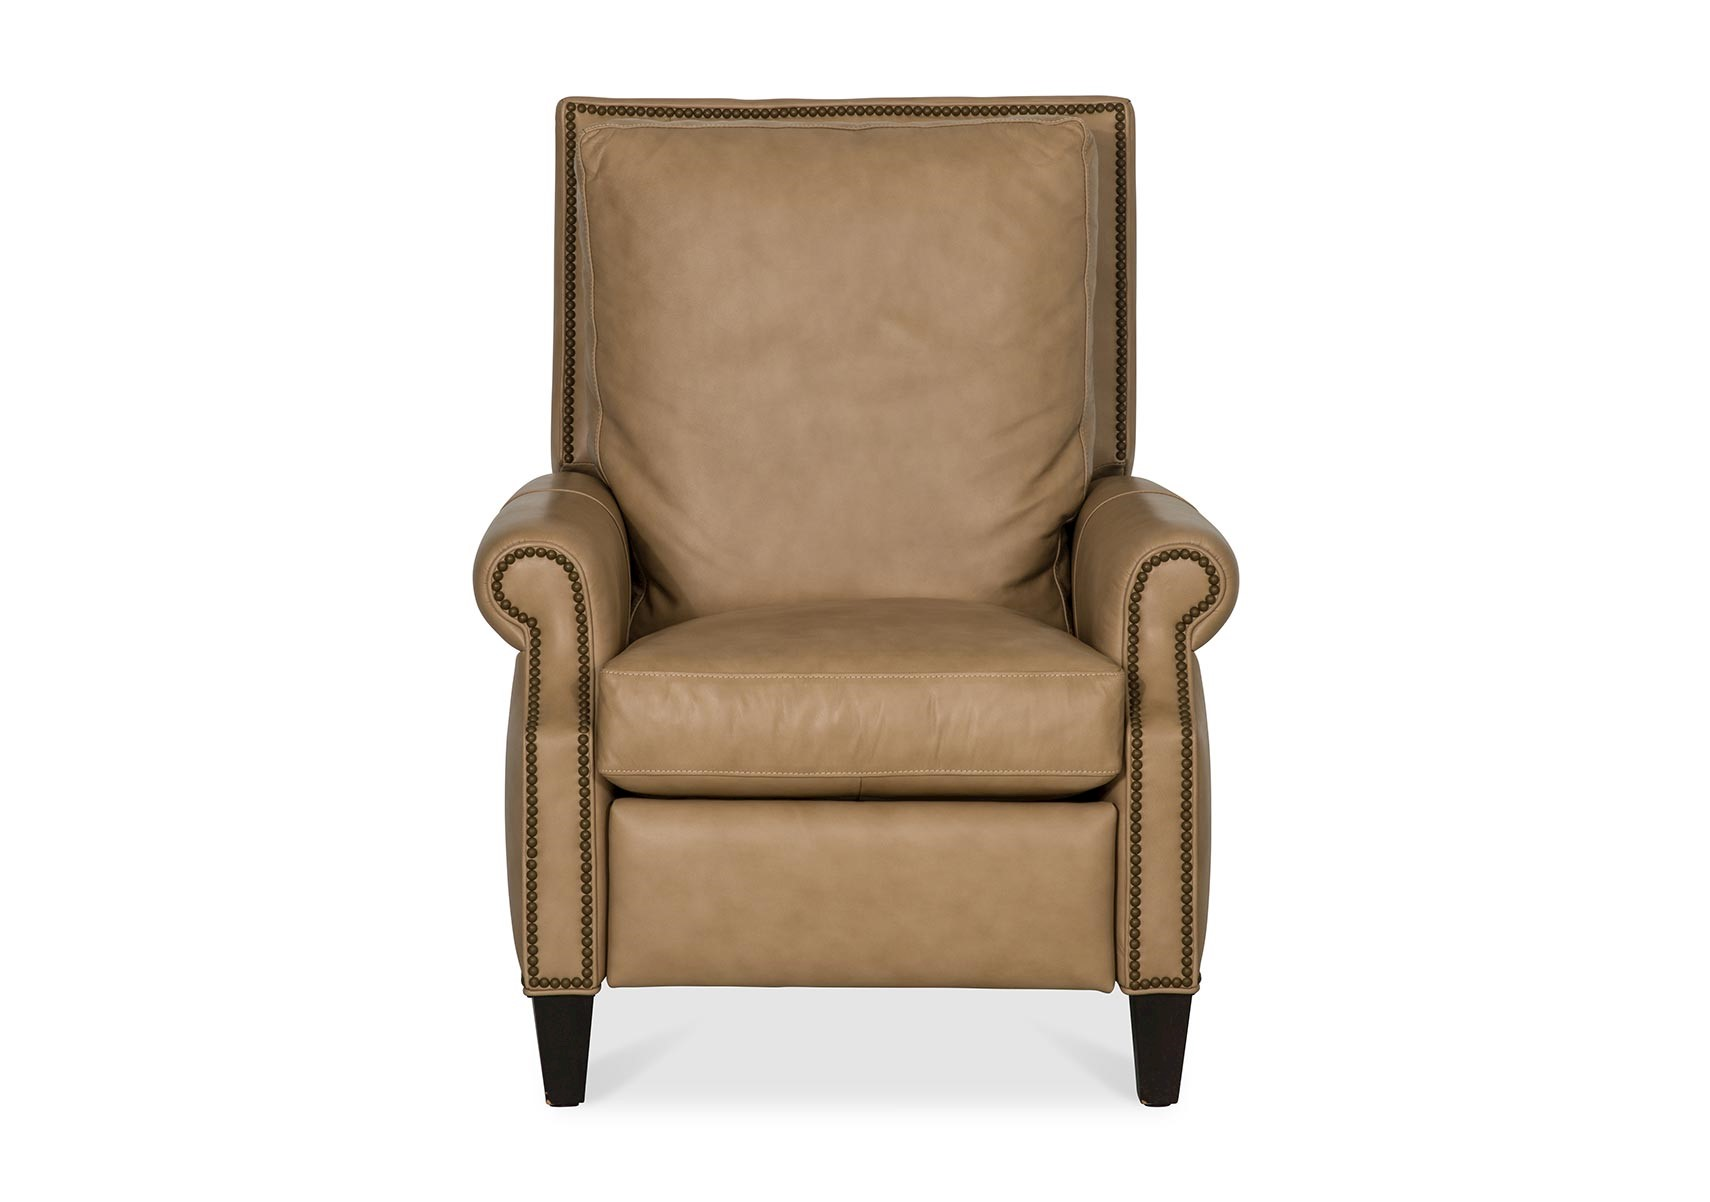 Calvin Tan Push-Back All-Leather Recliner  sc 1 st  Lacks & Lacks | Calvin Tan Push-Back All-Leather Recliner islam-shia.org